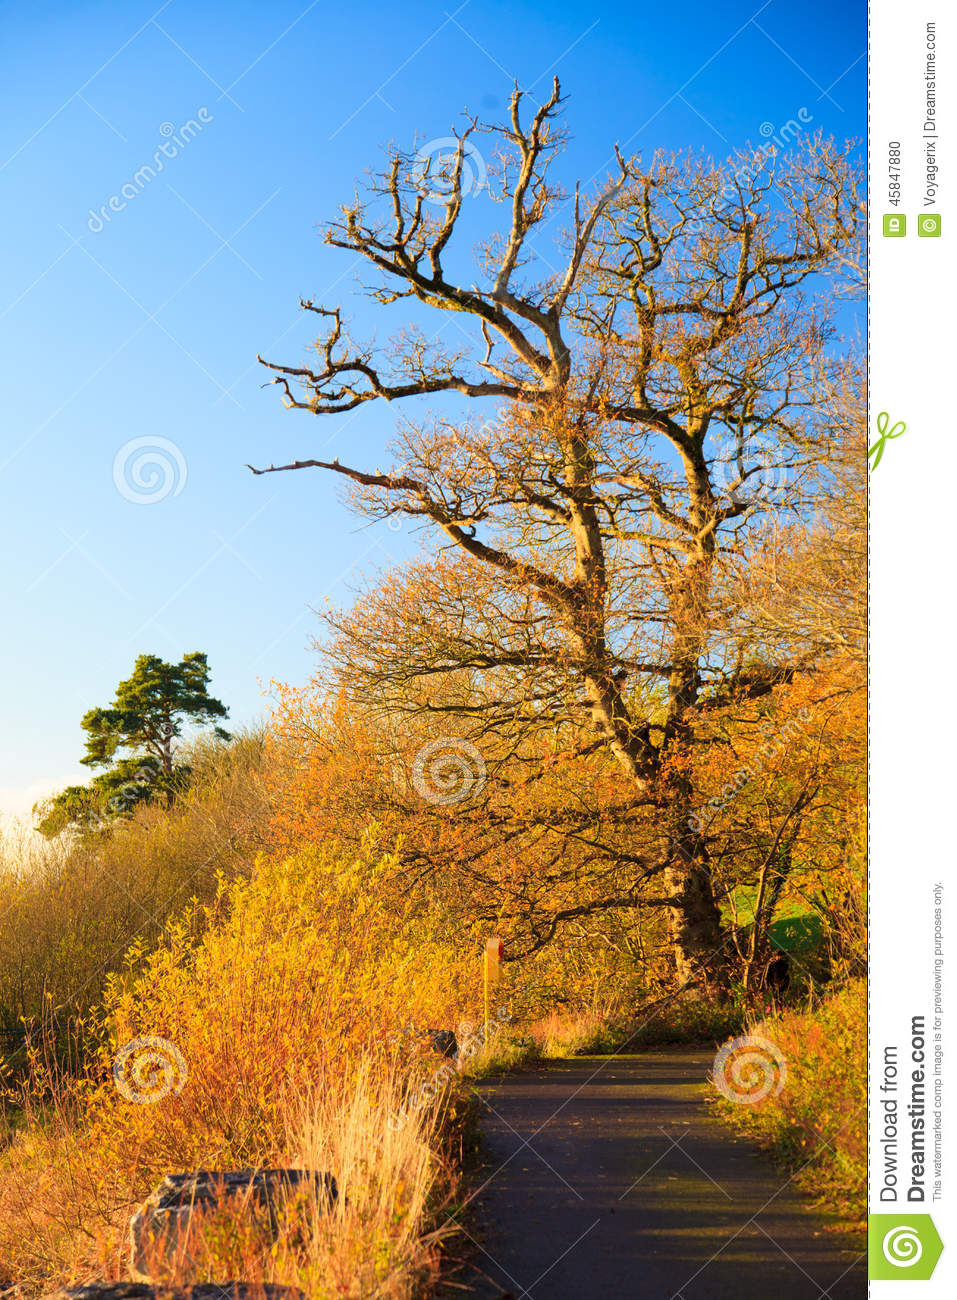 Autumn Pathway. Landscape with the autumnal trees.